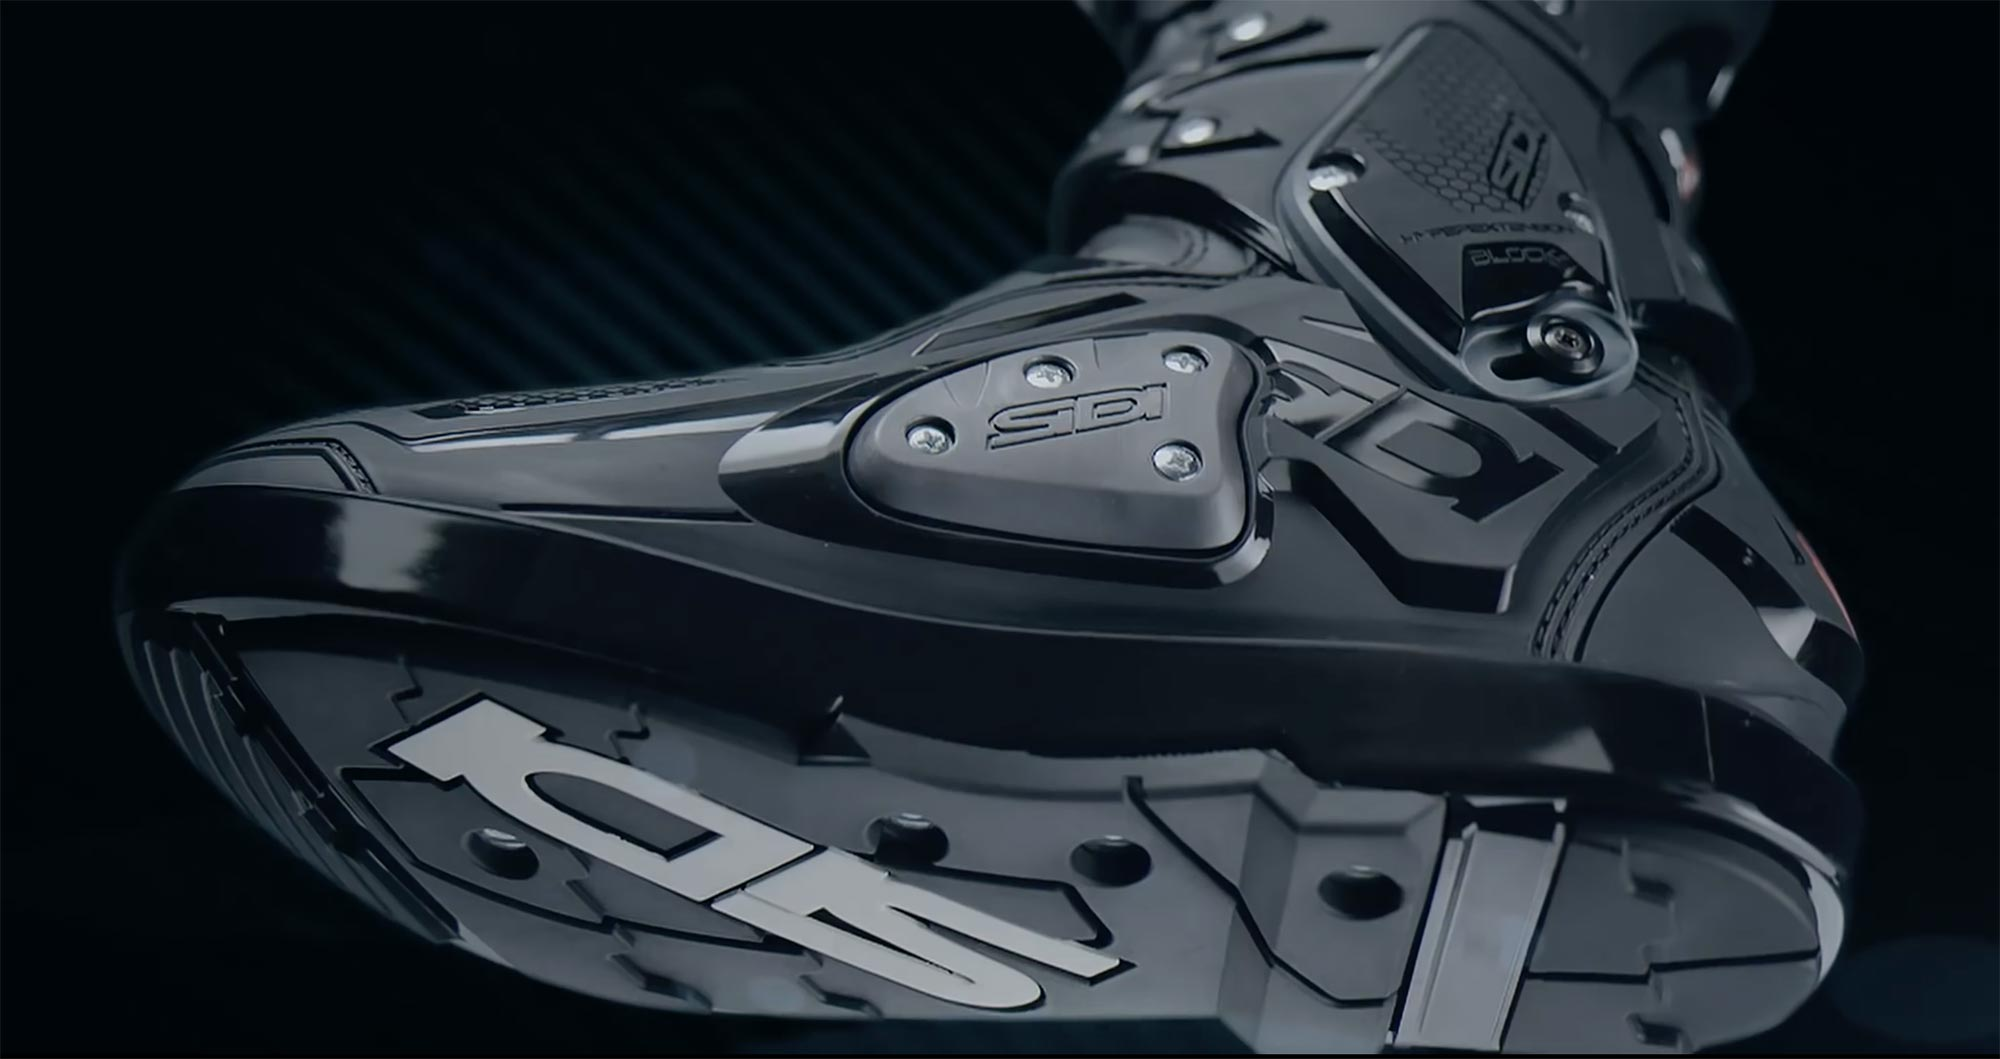 sidi crossfire 3 srs boots set to debut. Black Bedroom Furniture Sets. Home Design Ideas